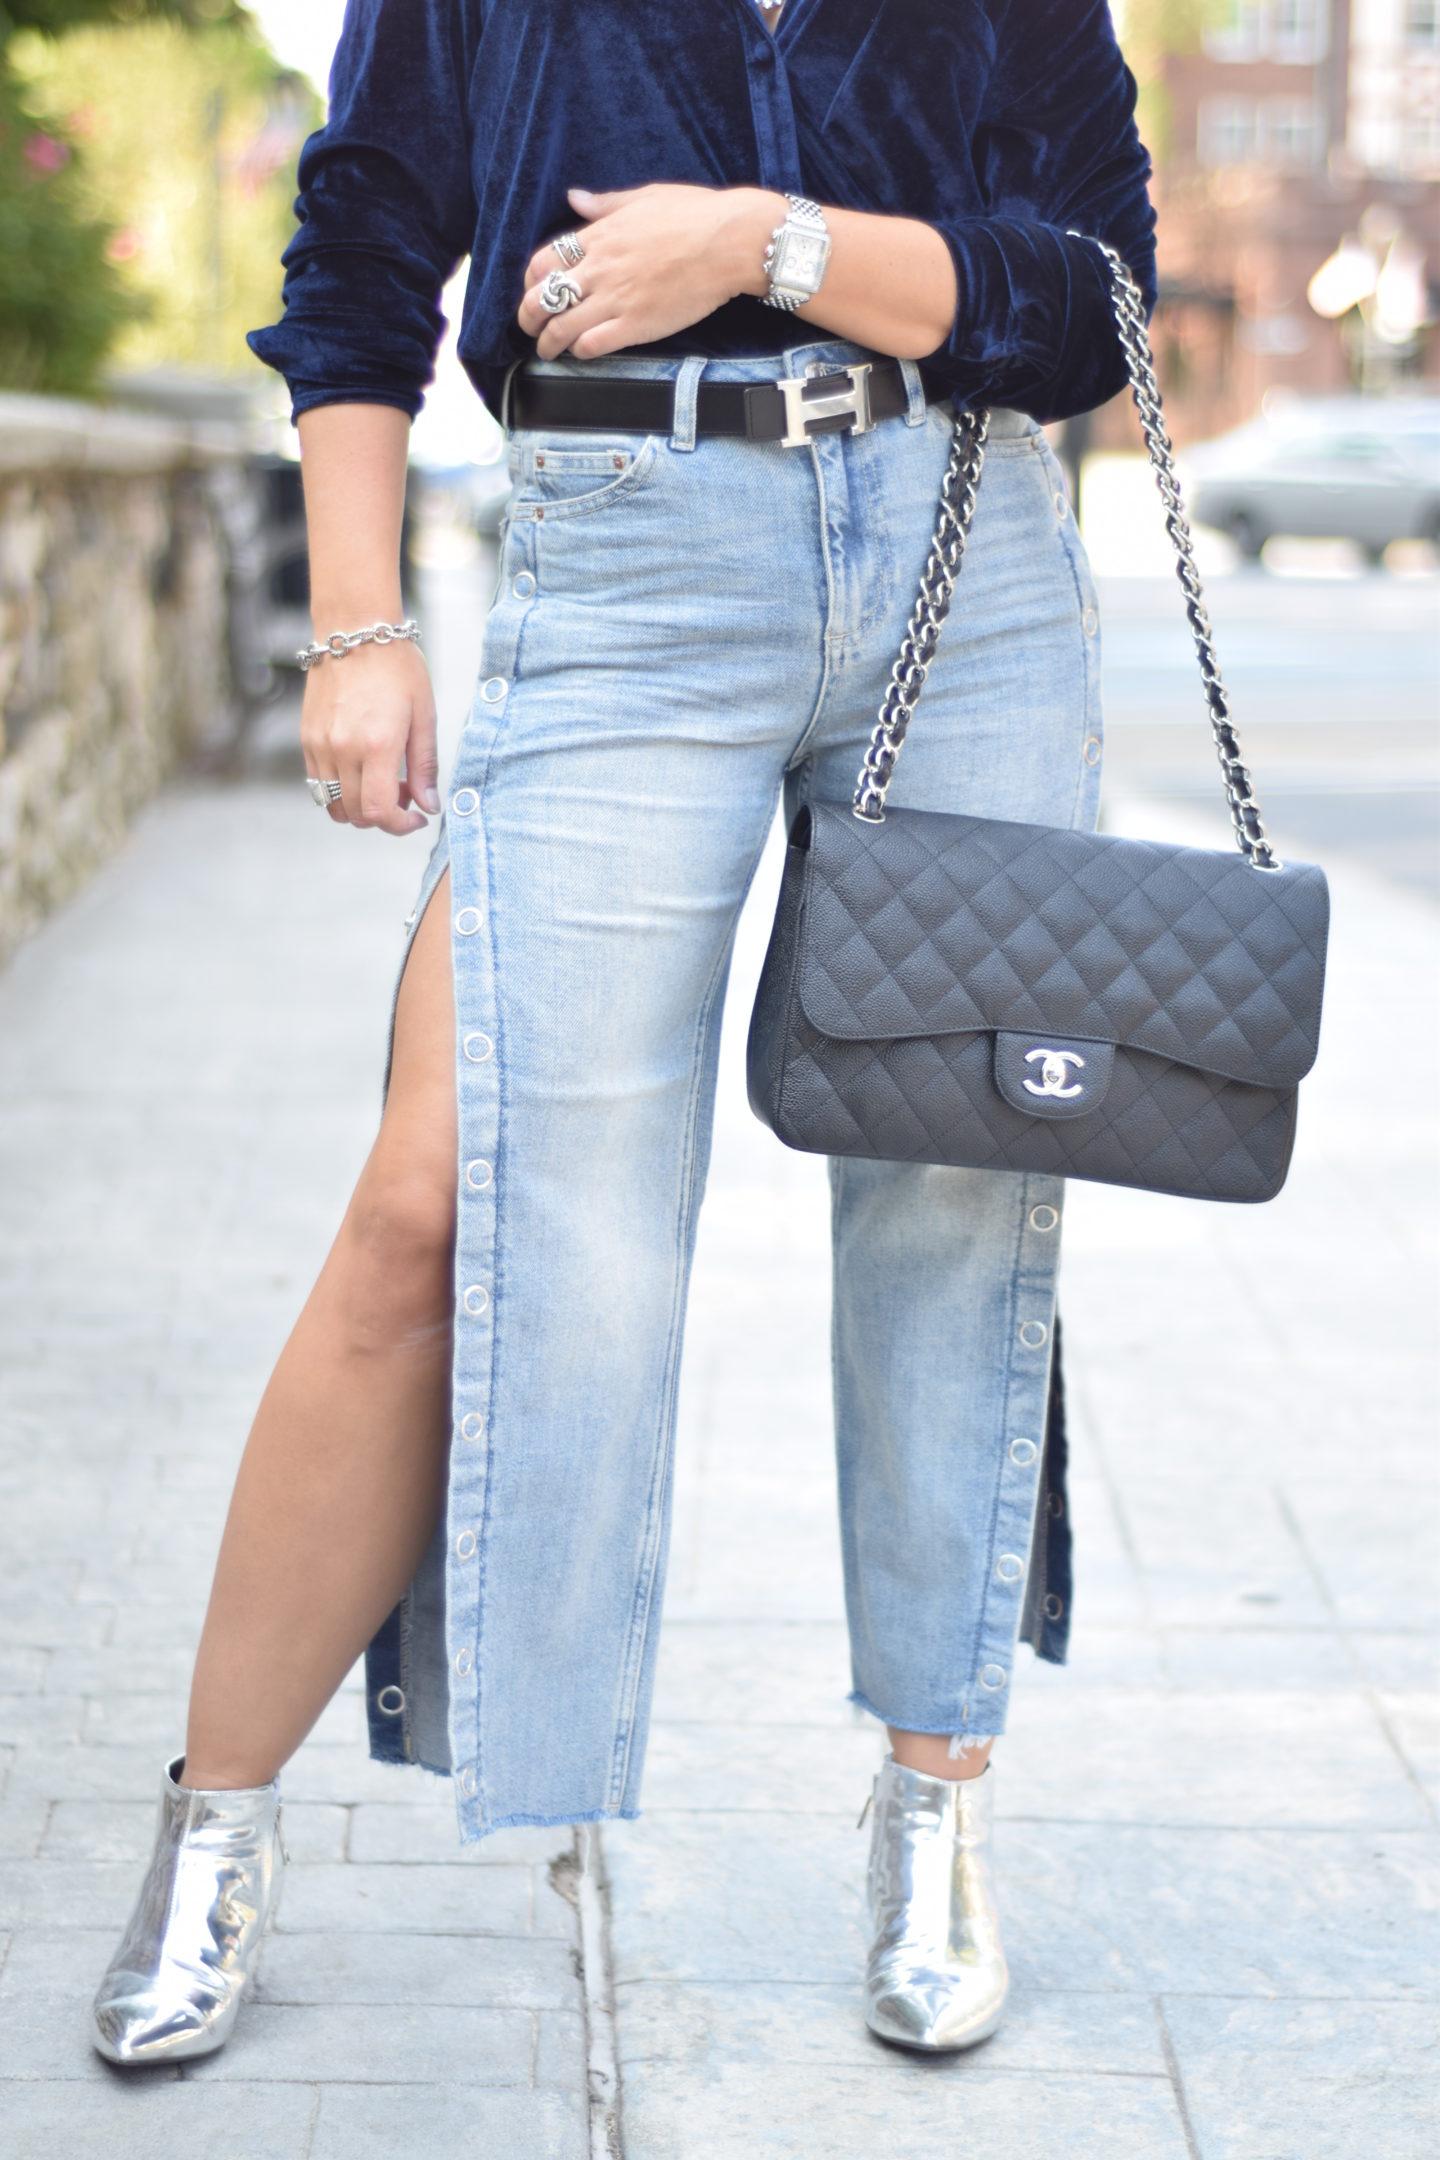 Fashion-Topshop-Street Style-Chanel Bag-Hermes Belt